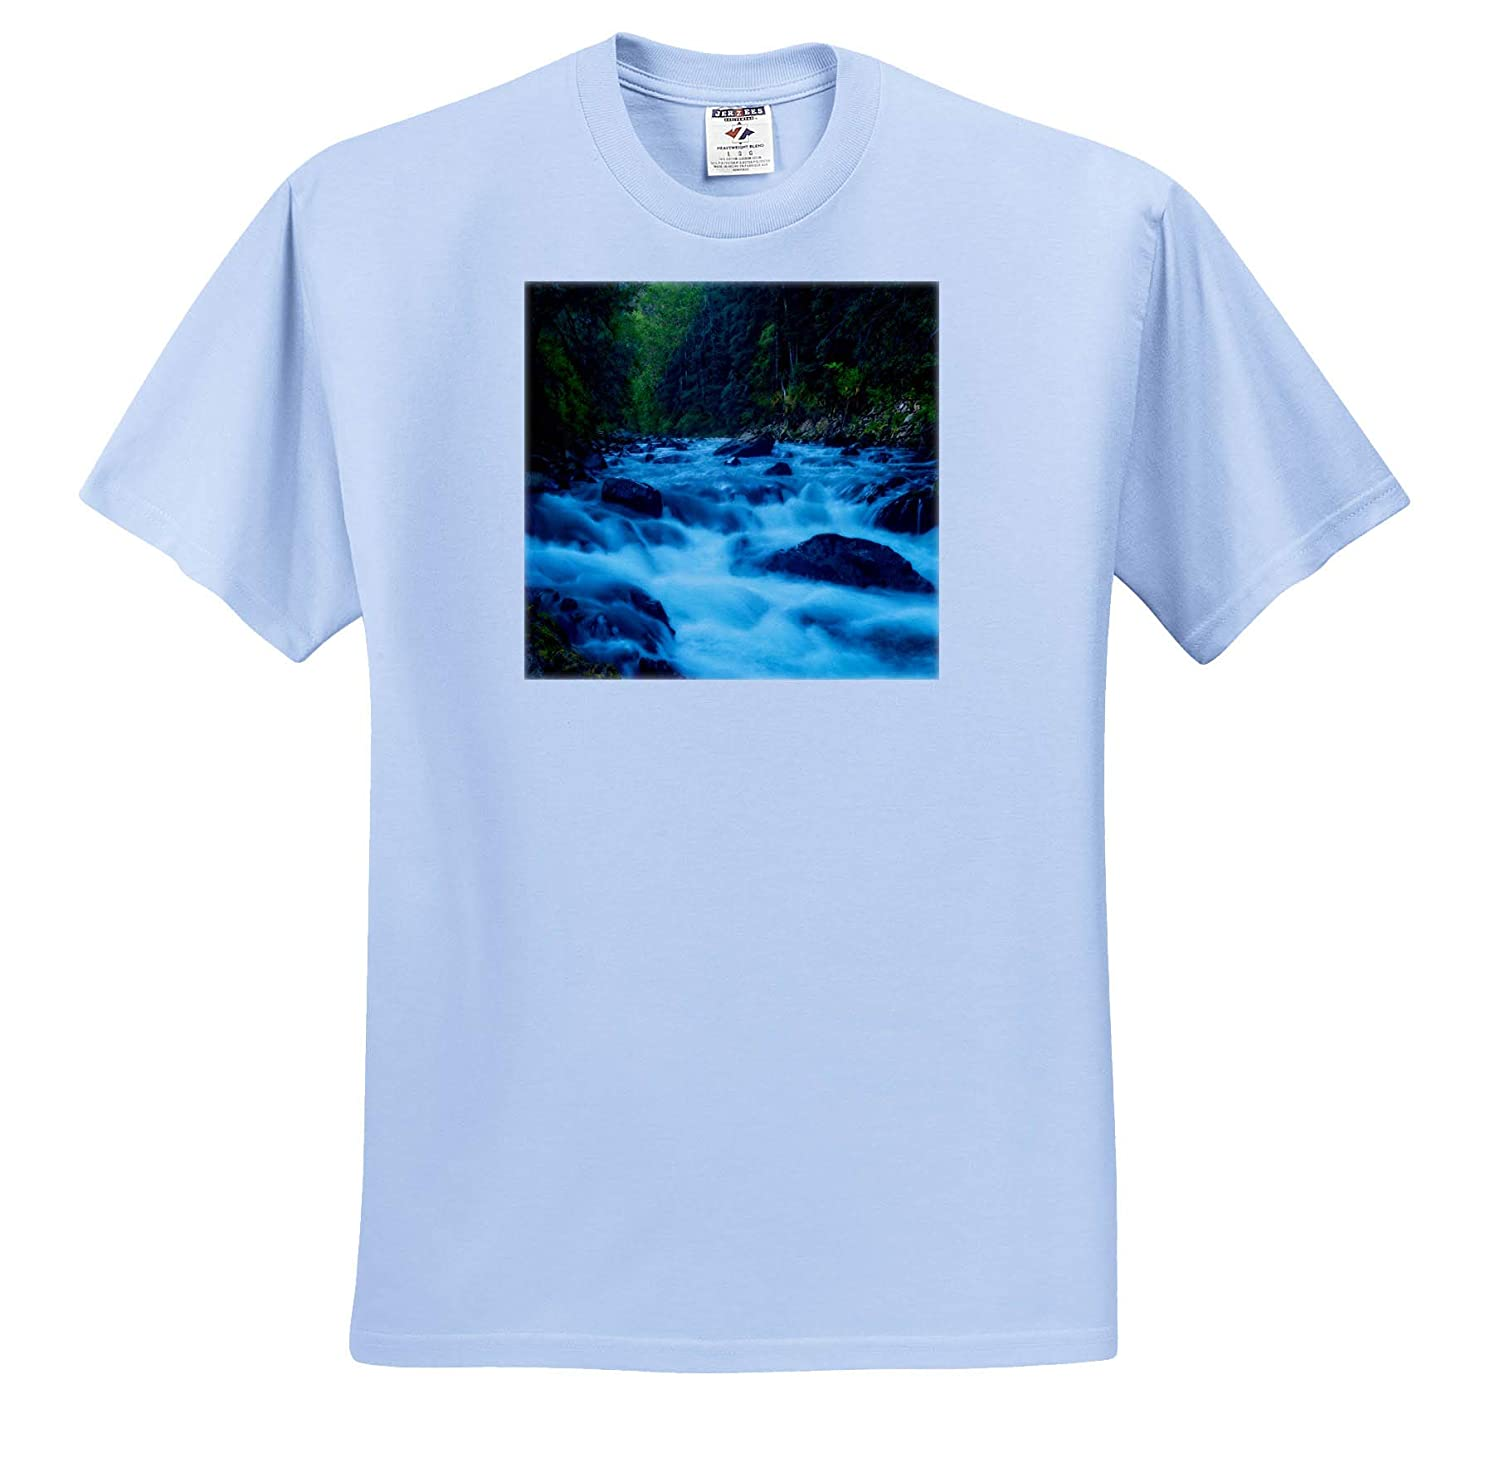 Adult T-Shirt XL Rushing Water Flowing Through Forest Landscapes 3dRose Mike Swindle Photography ts/_309071